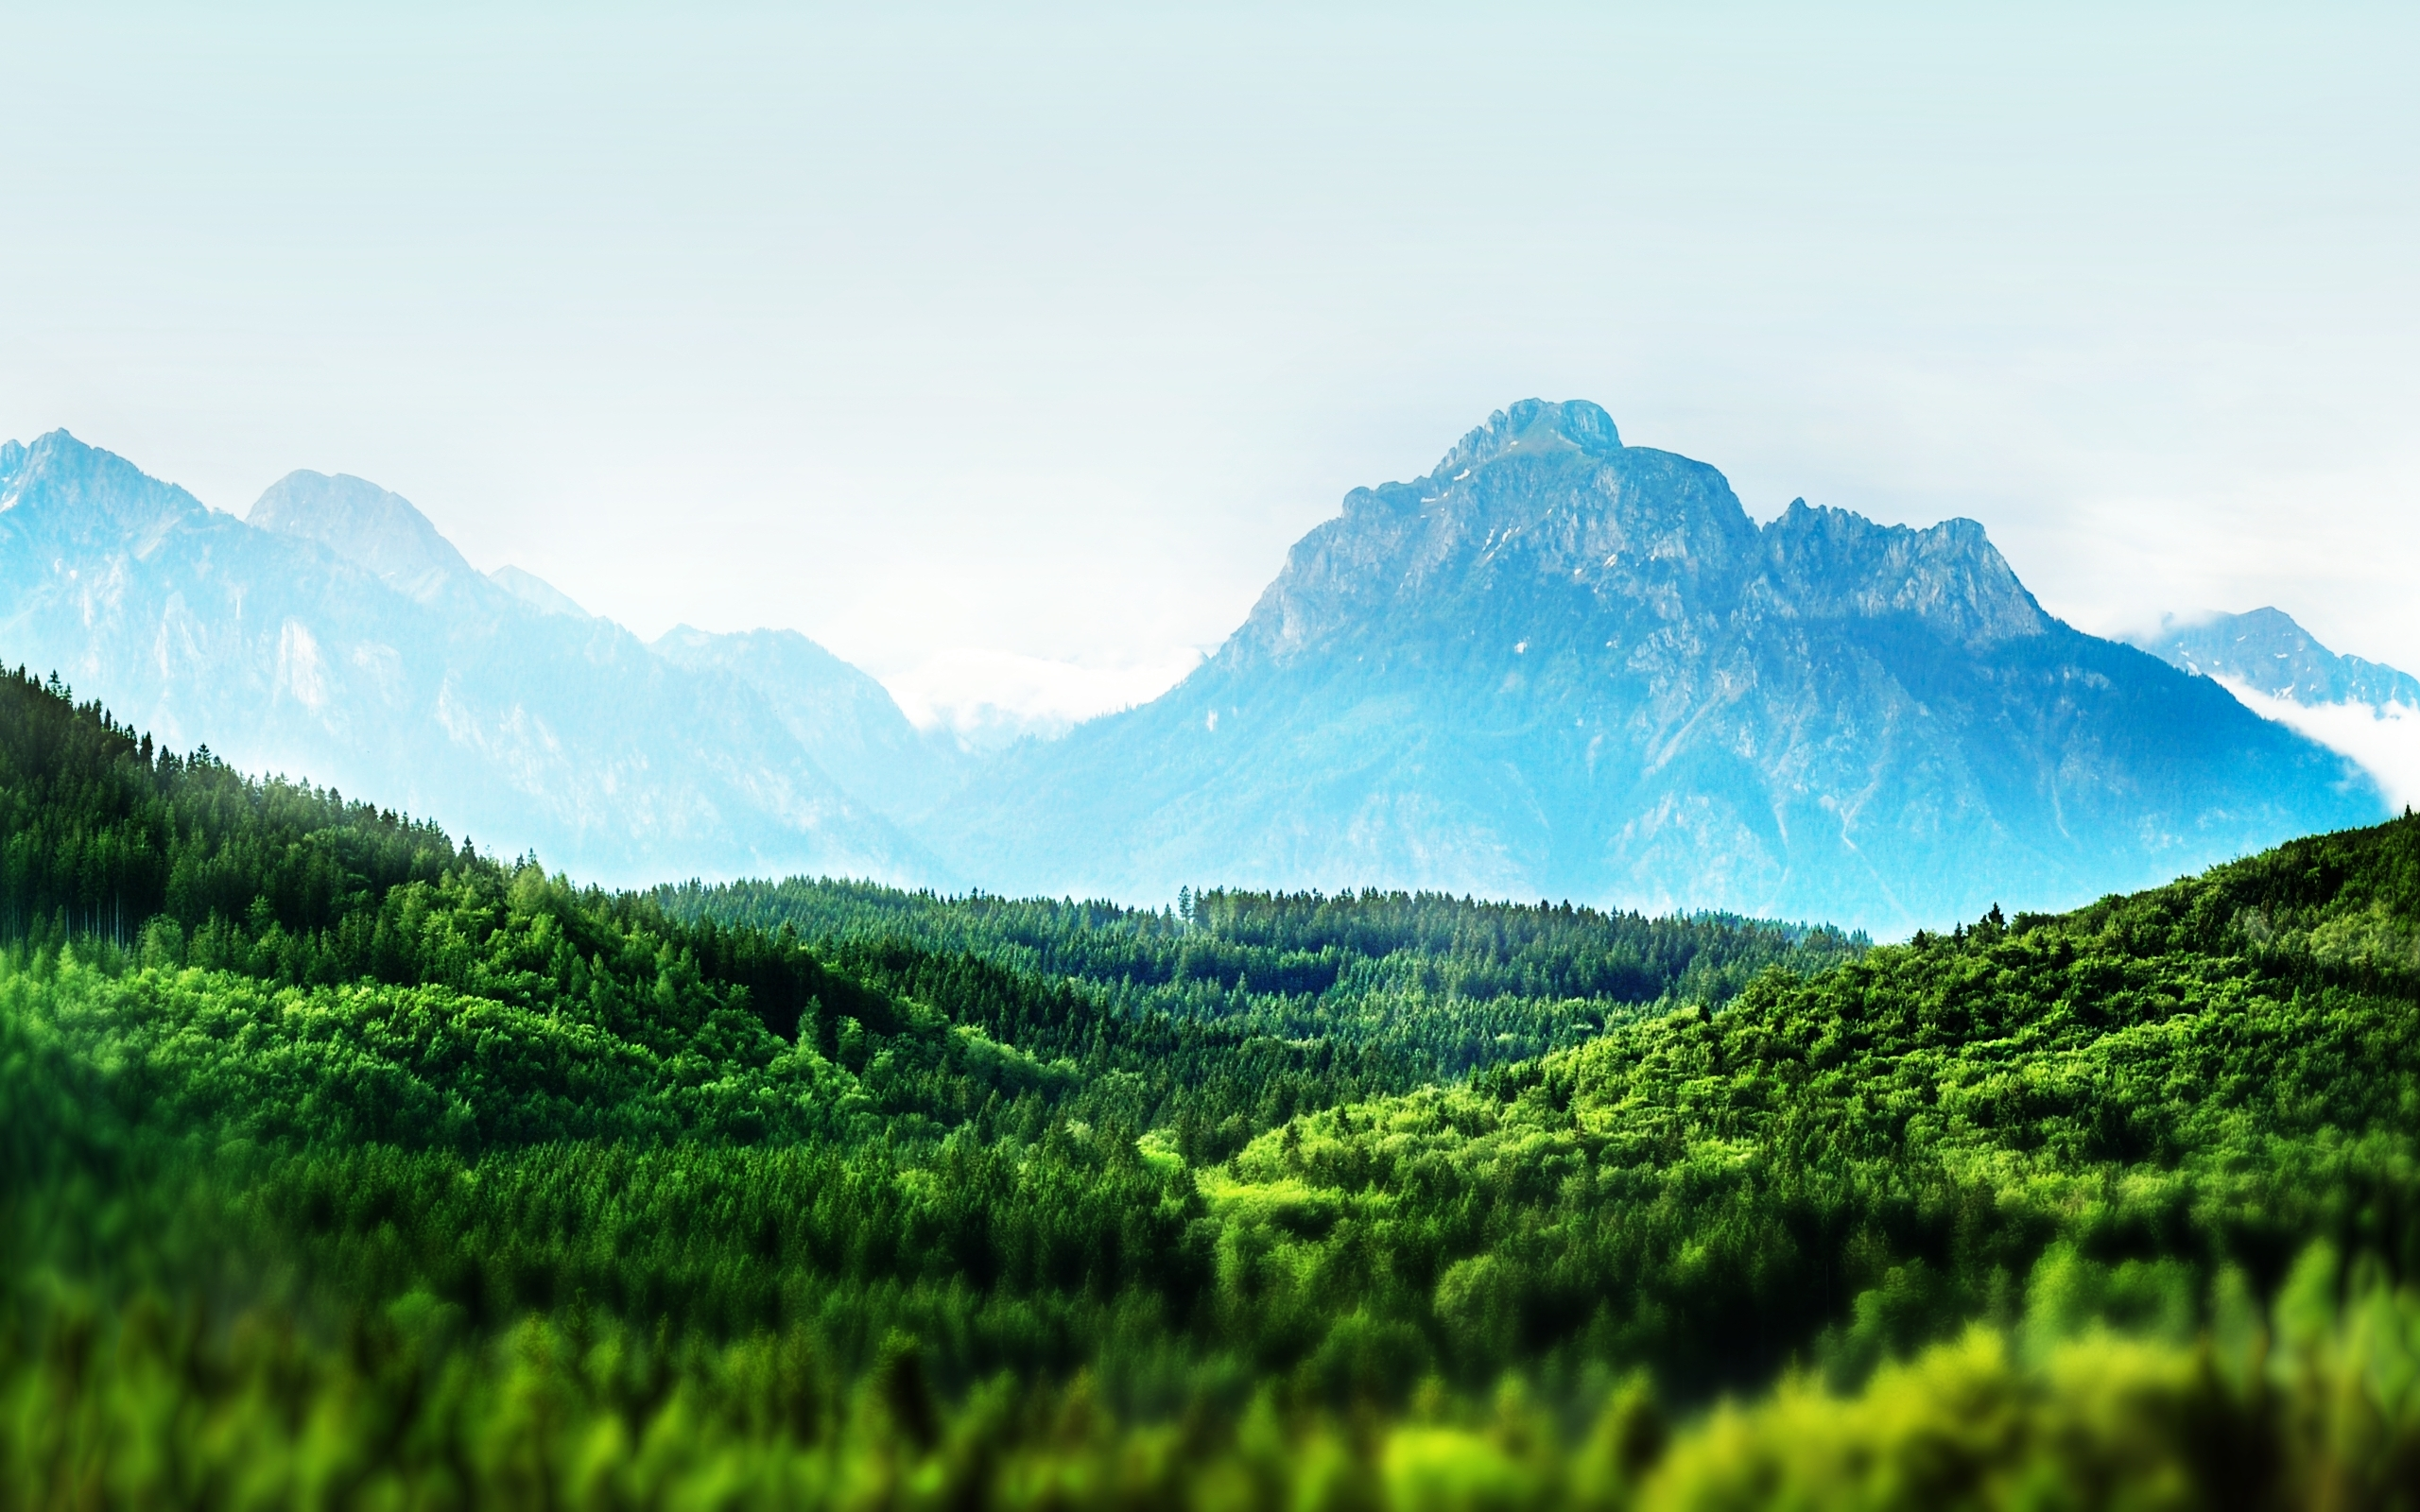 Earth - Artistic  - Earth - Mountain - Forests Wallpaper